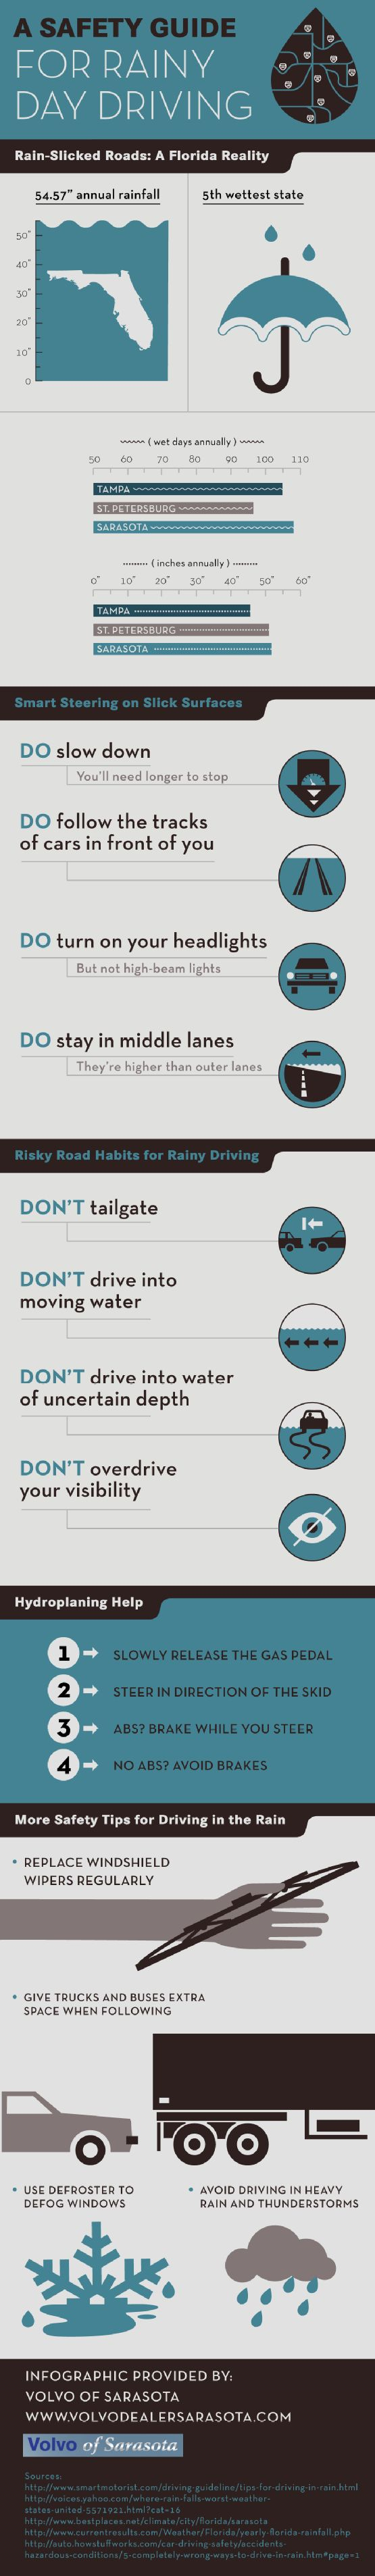 Drivers should never drive into moving water on rainy days. Read about other risky road habits that driver should avoid on rainy days by clicking over to this infographic from a Volvo dealership in Sarasota.